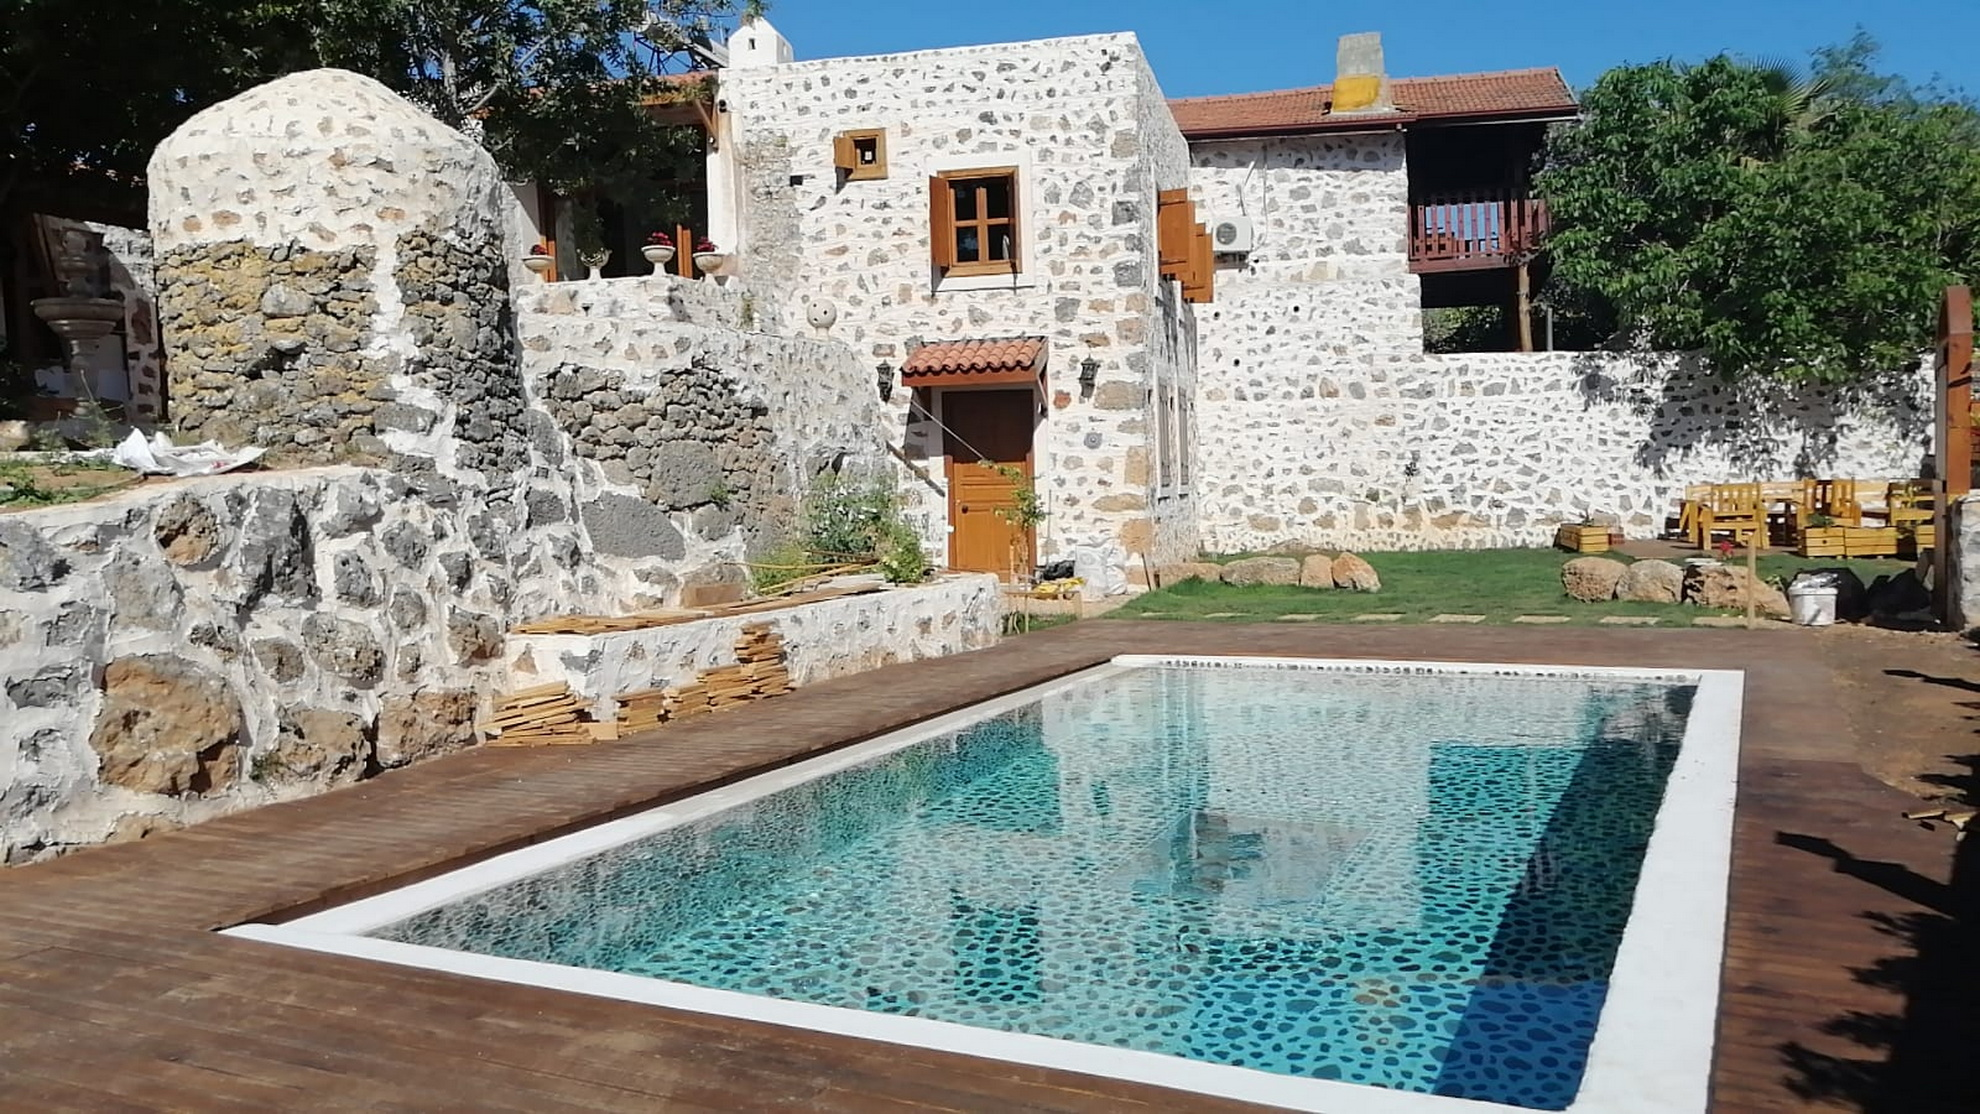 4 Bed Traditional Stone House with Private Pool & Garden in Kayakoy